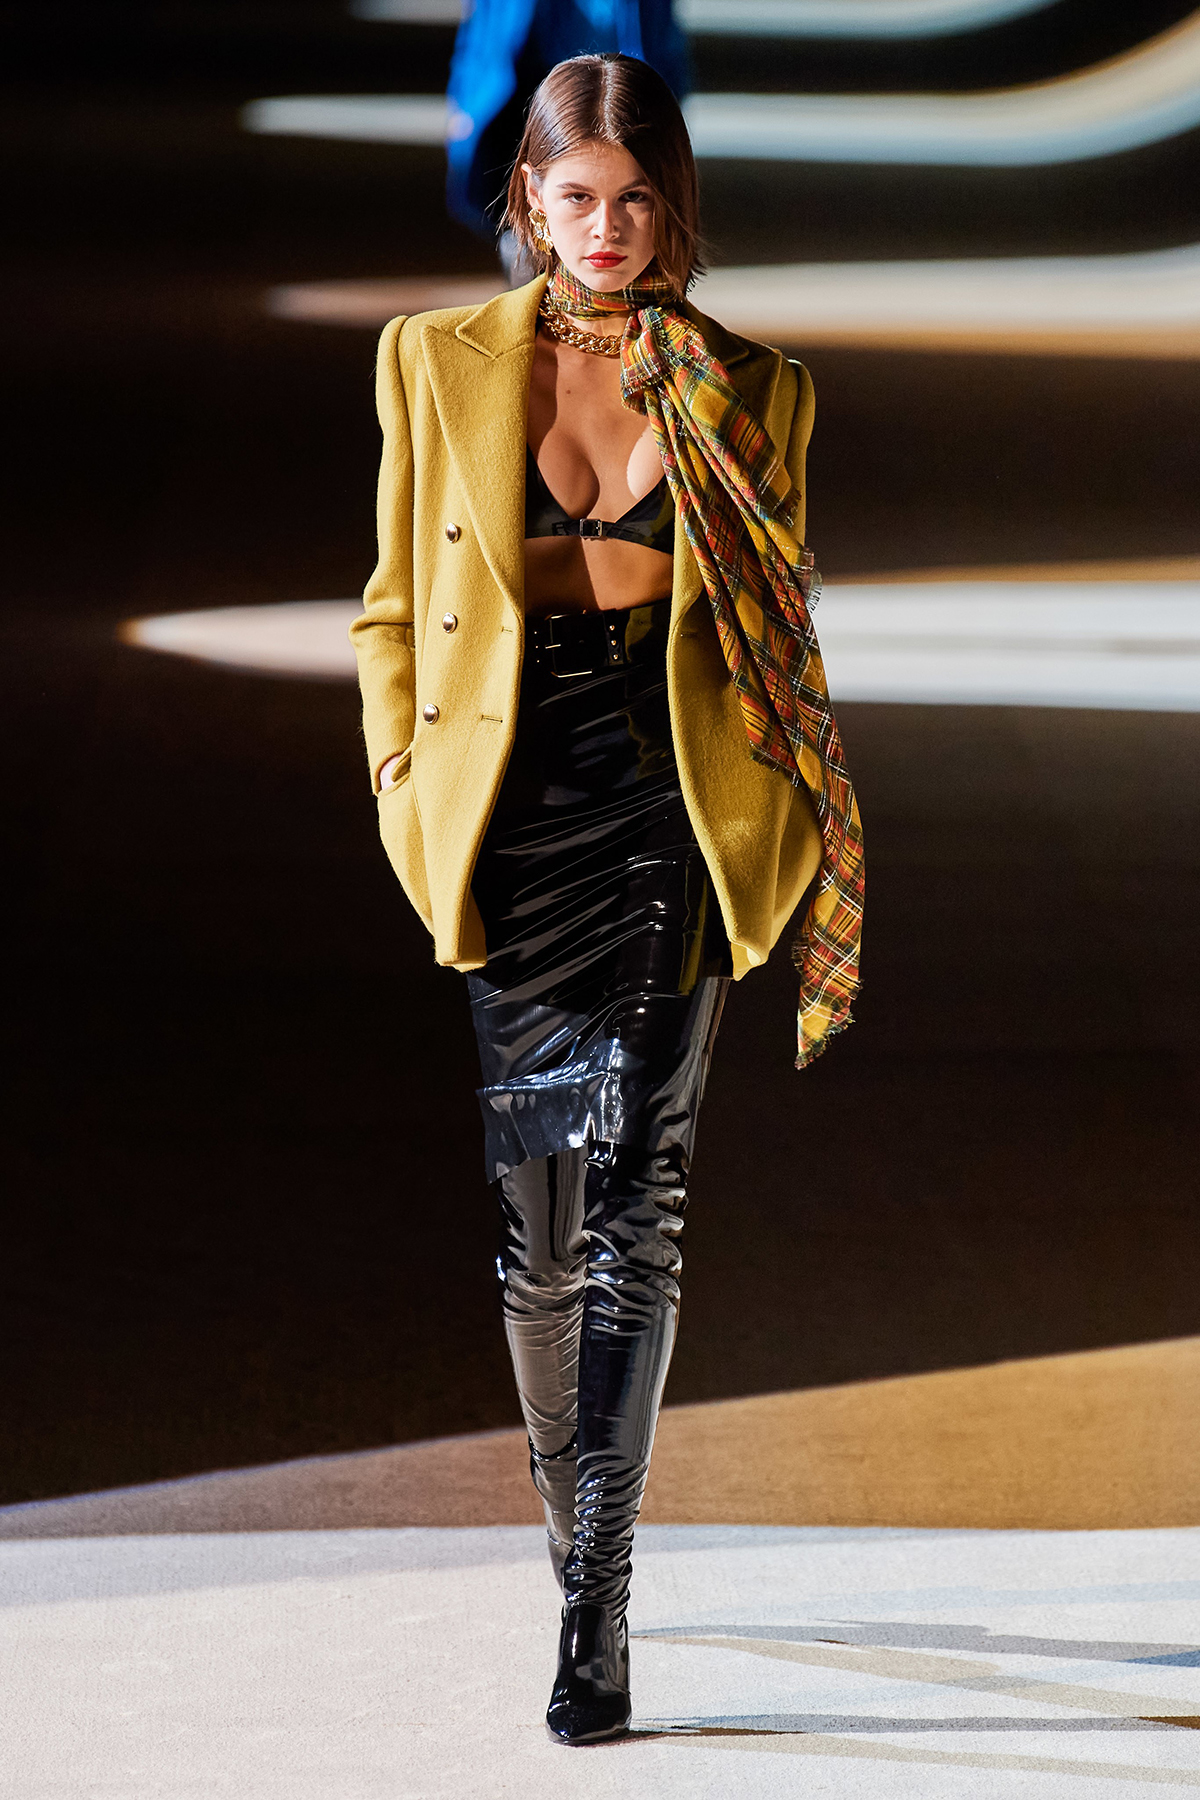 Saint Laurent Fall 2020 / Saint Laurent осень-зима 2020